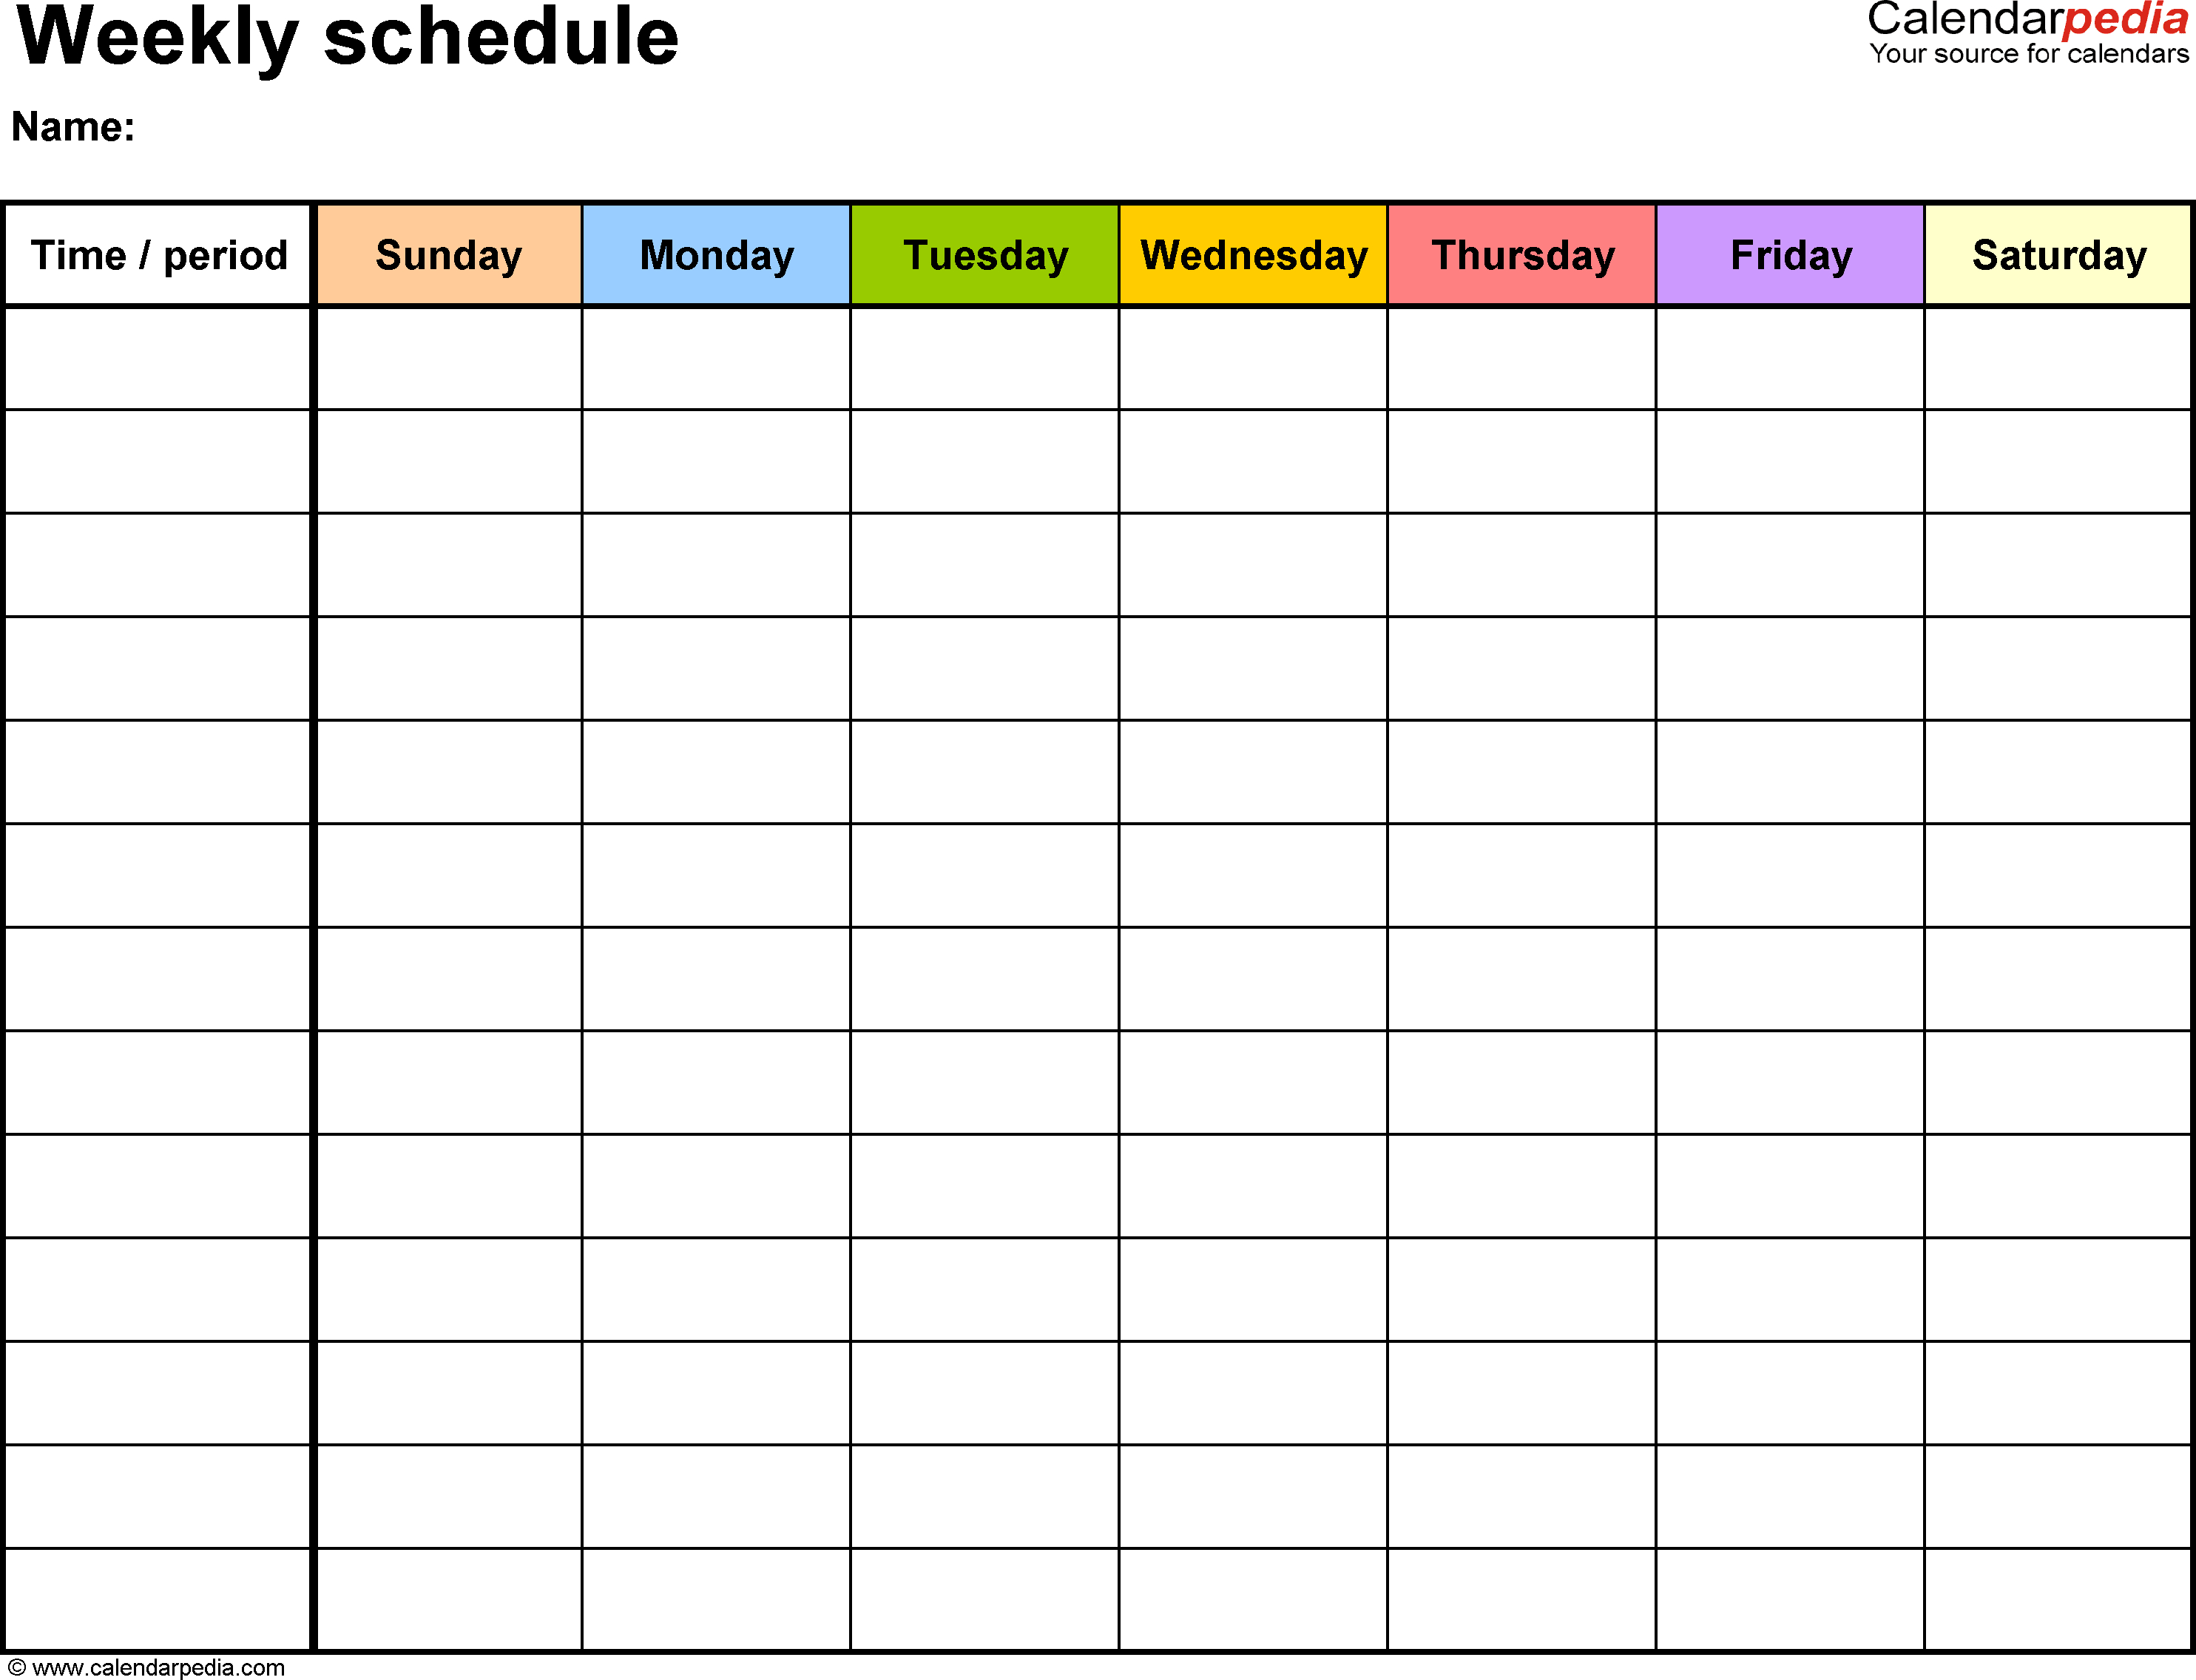 Free Weekly Schedule Templates For Excel   18 Templates To Employee Schedule Excel Spreadsheet